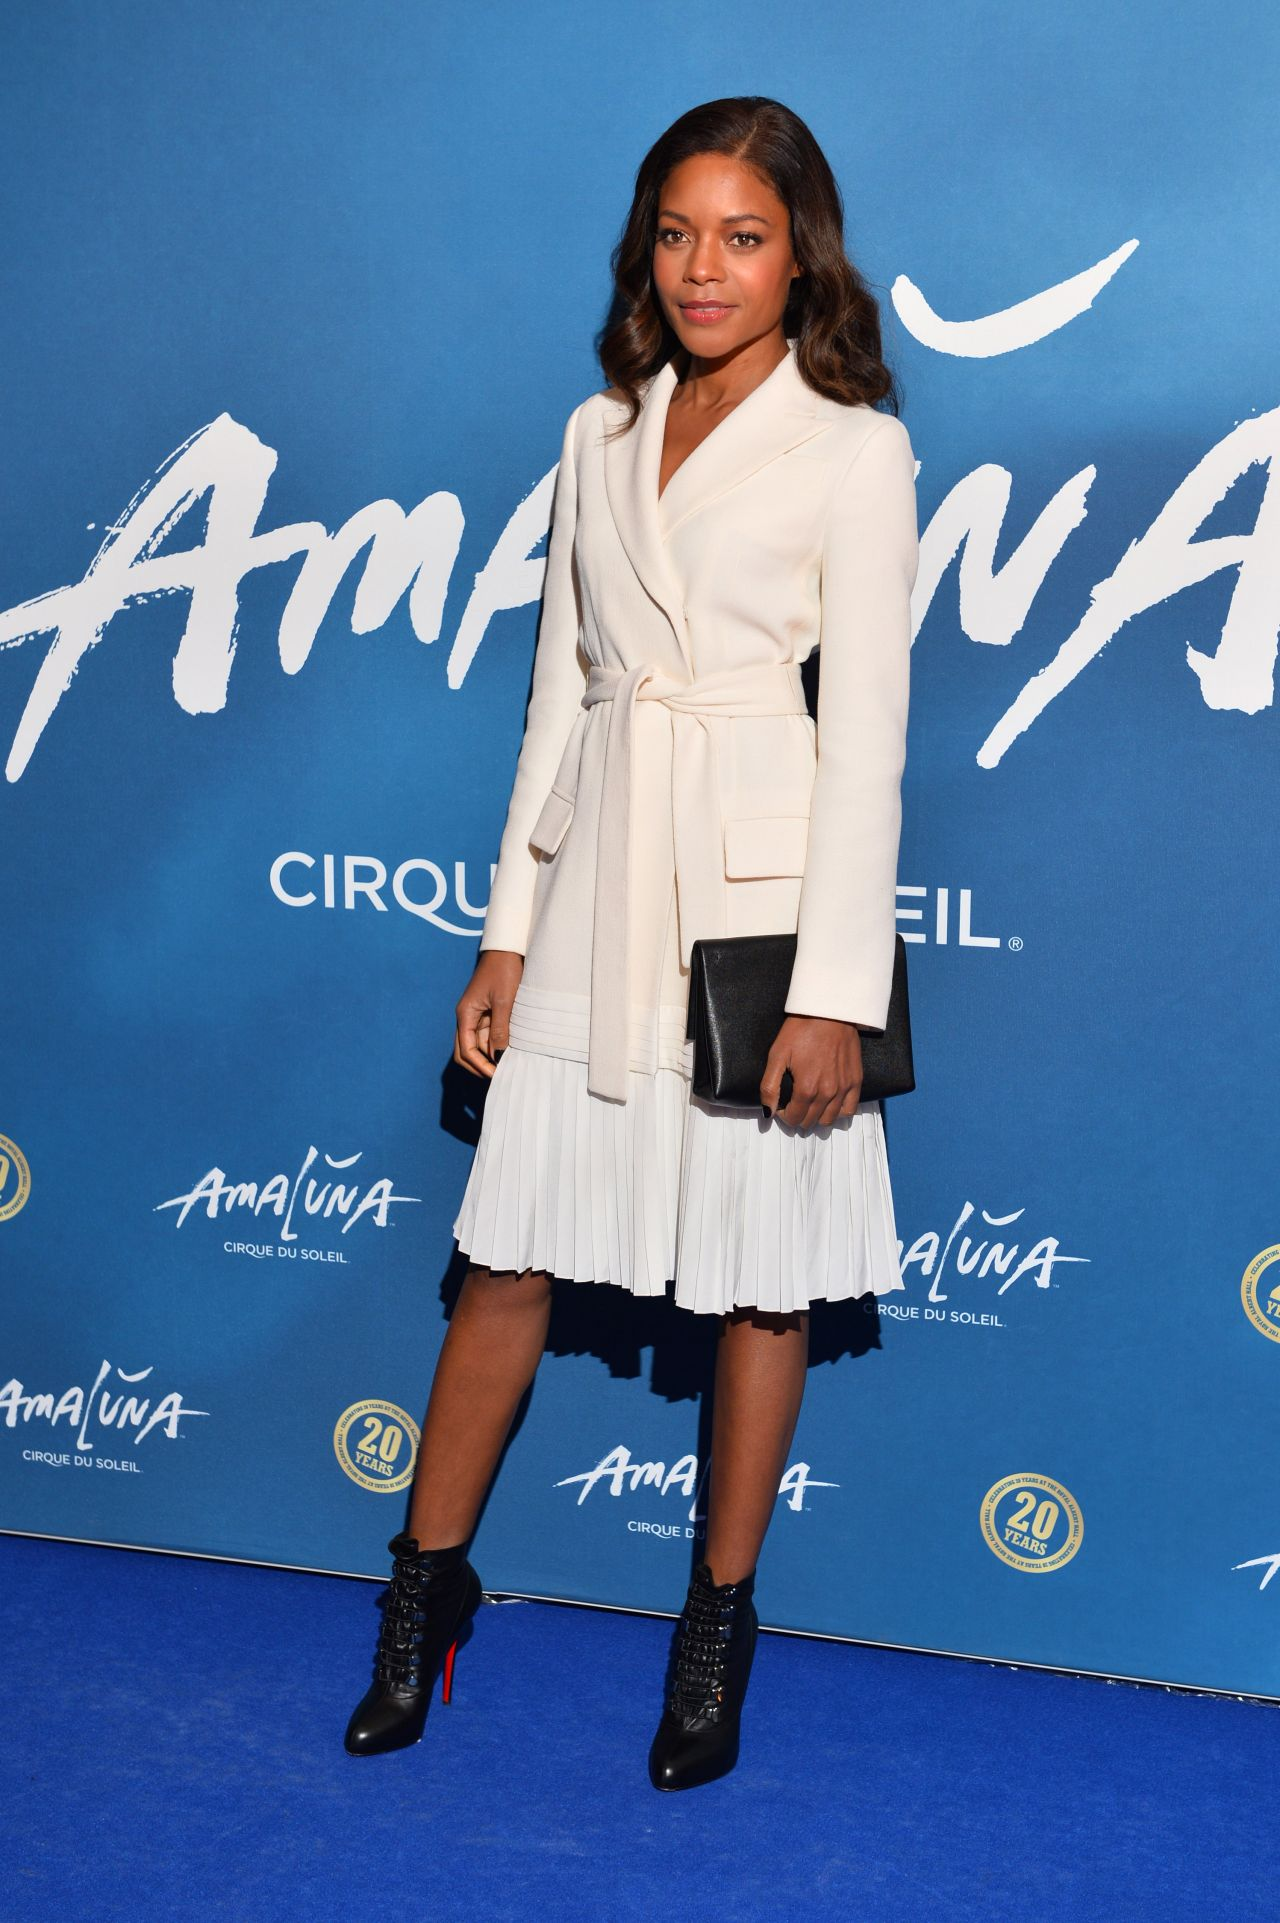 naomie-harris-cirque-du-soleil-amaluna-premiere-in-london-january-2016-1